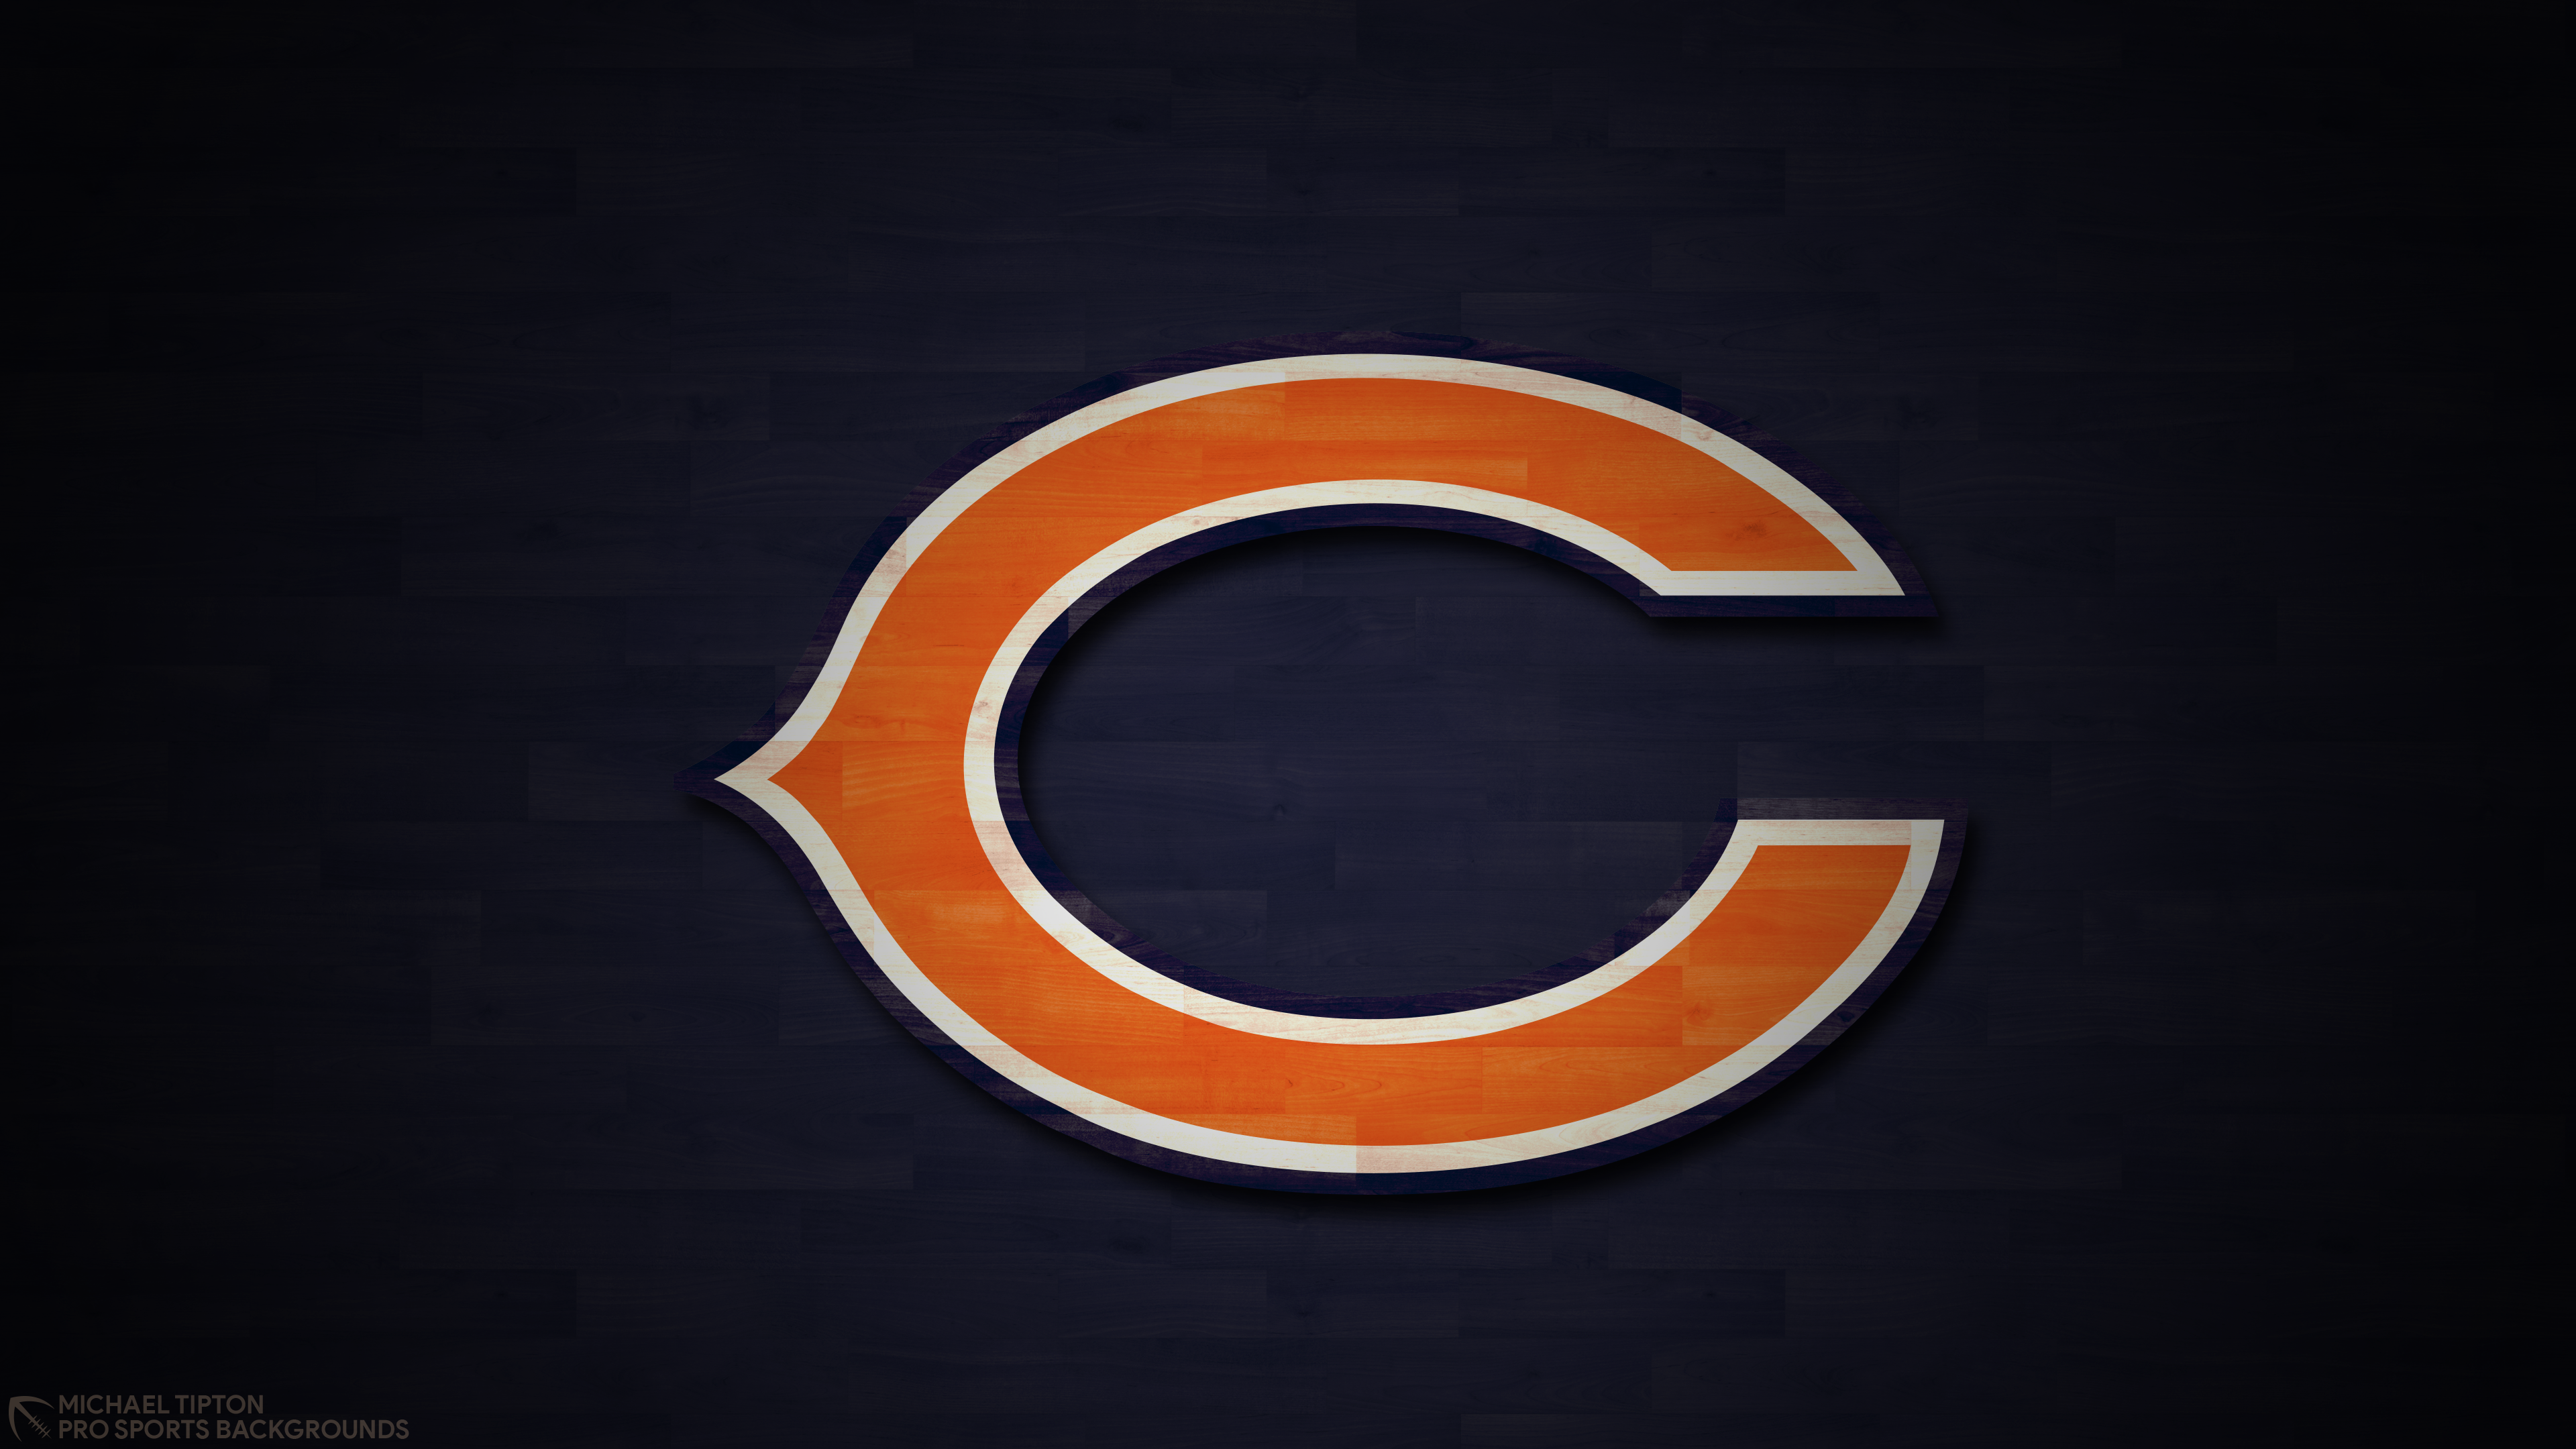 2021 Chicago Bears Wallpapers Pro Sports Backgrounds 3840x2160